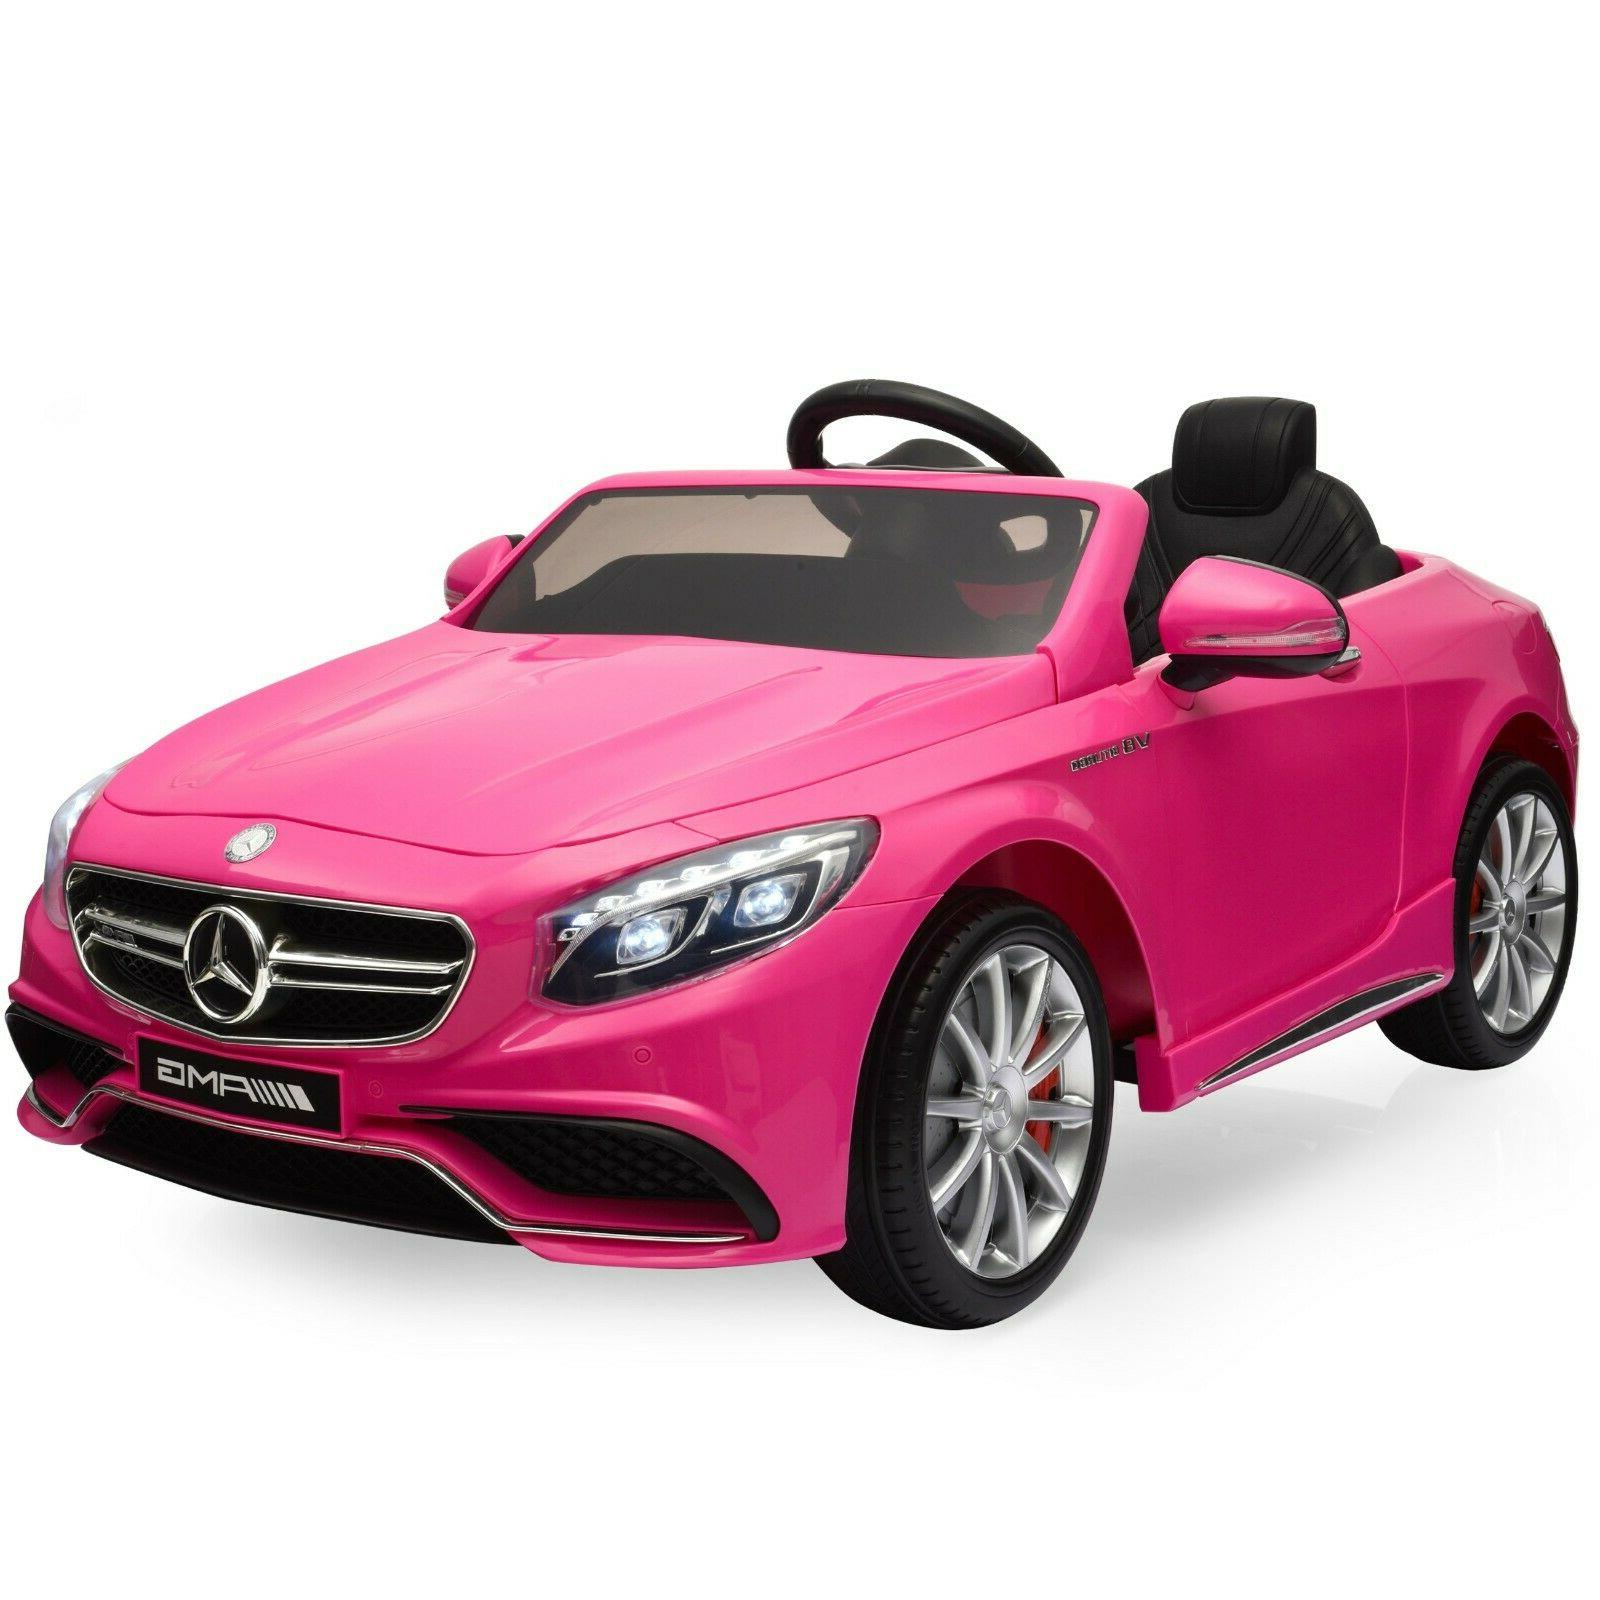 Power for Mercedes Kids Rideable Ride On